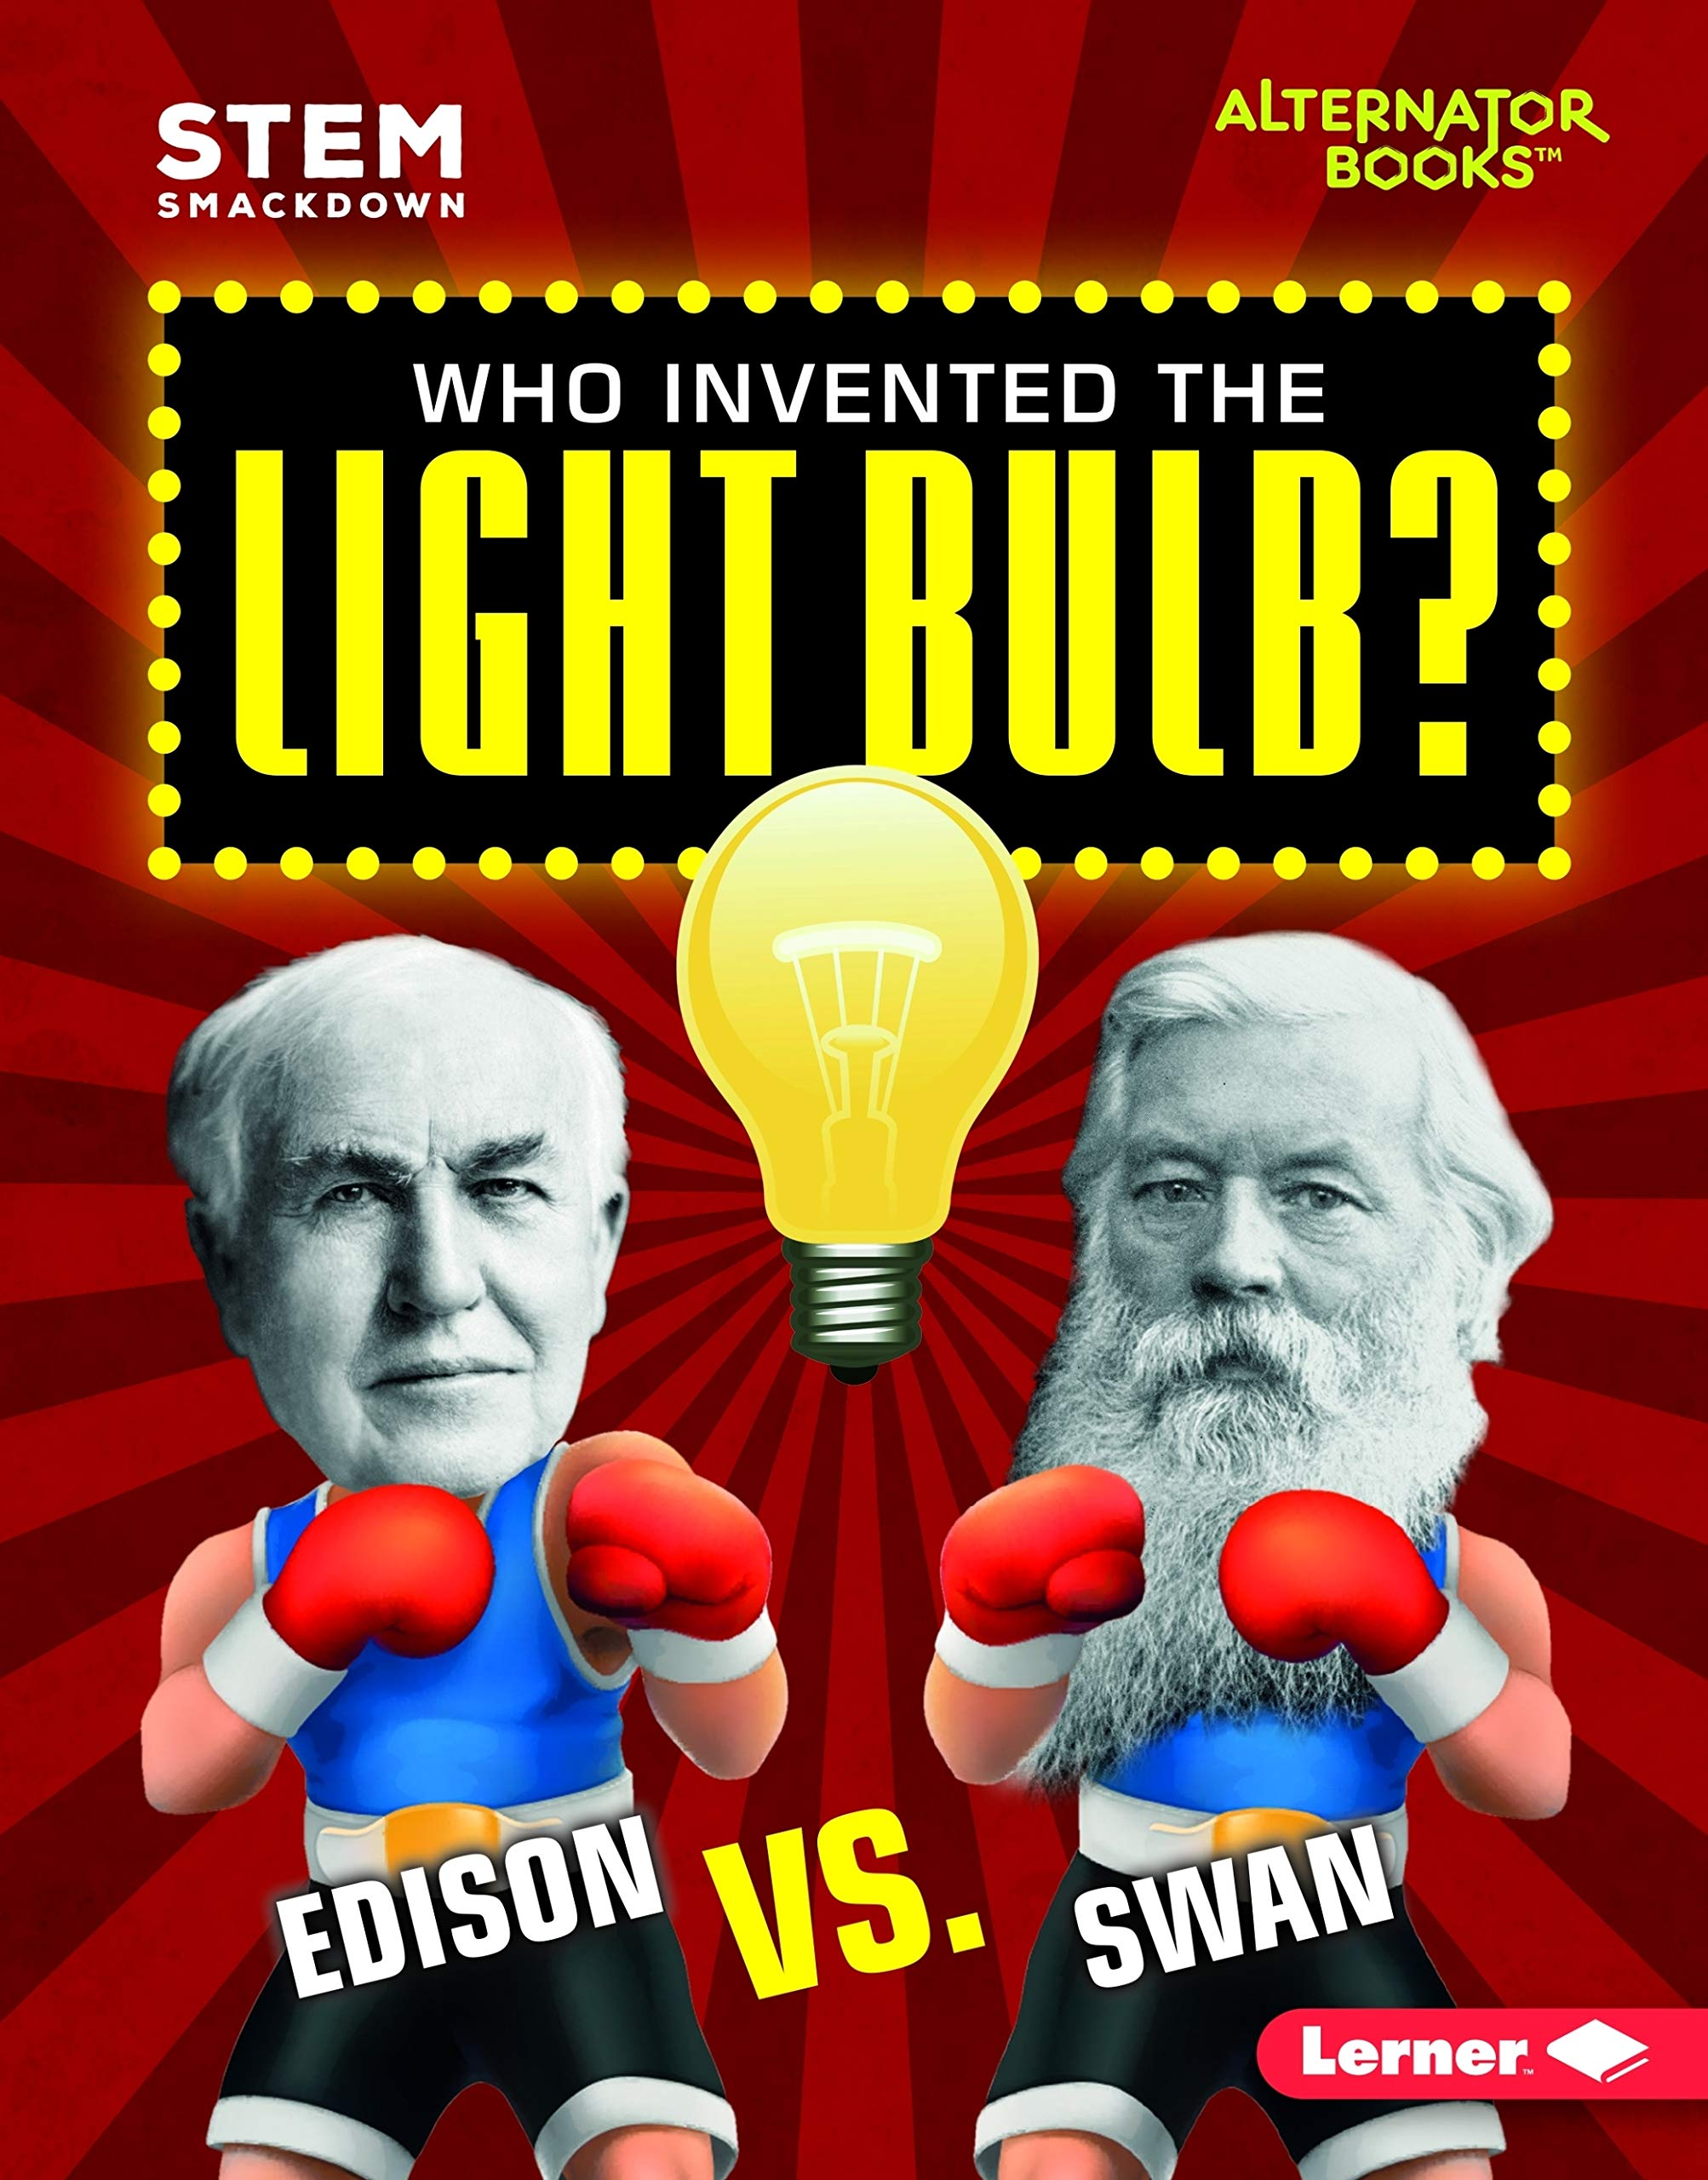 Who Invented the Light Bulb?: Edison Vs. Swan (STEM: Smackdown) by Lerner Pub Group